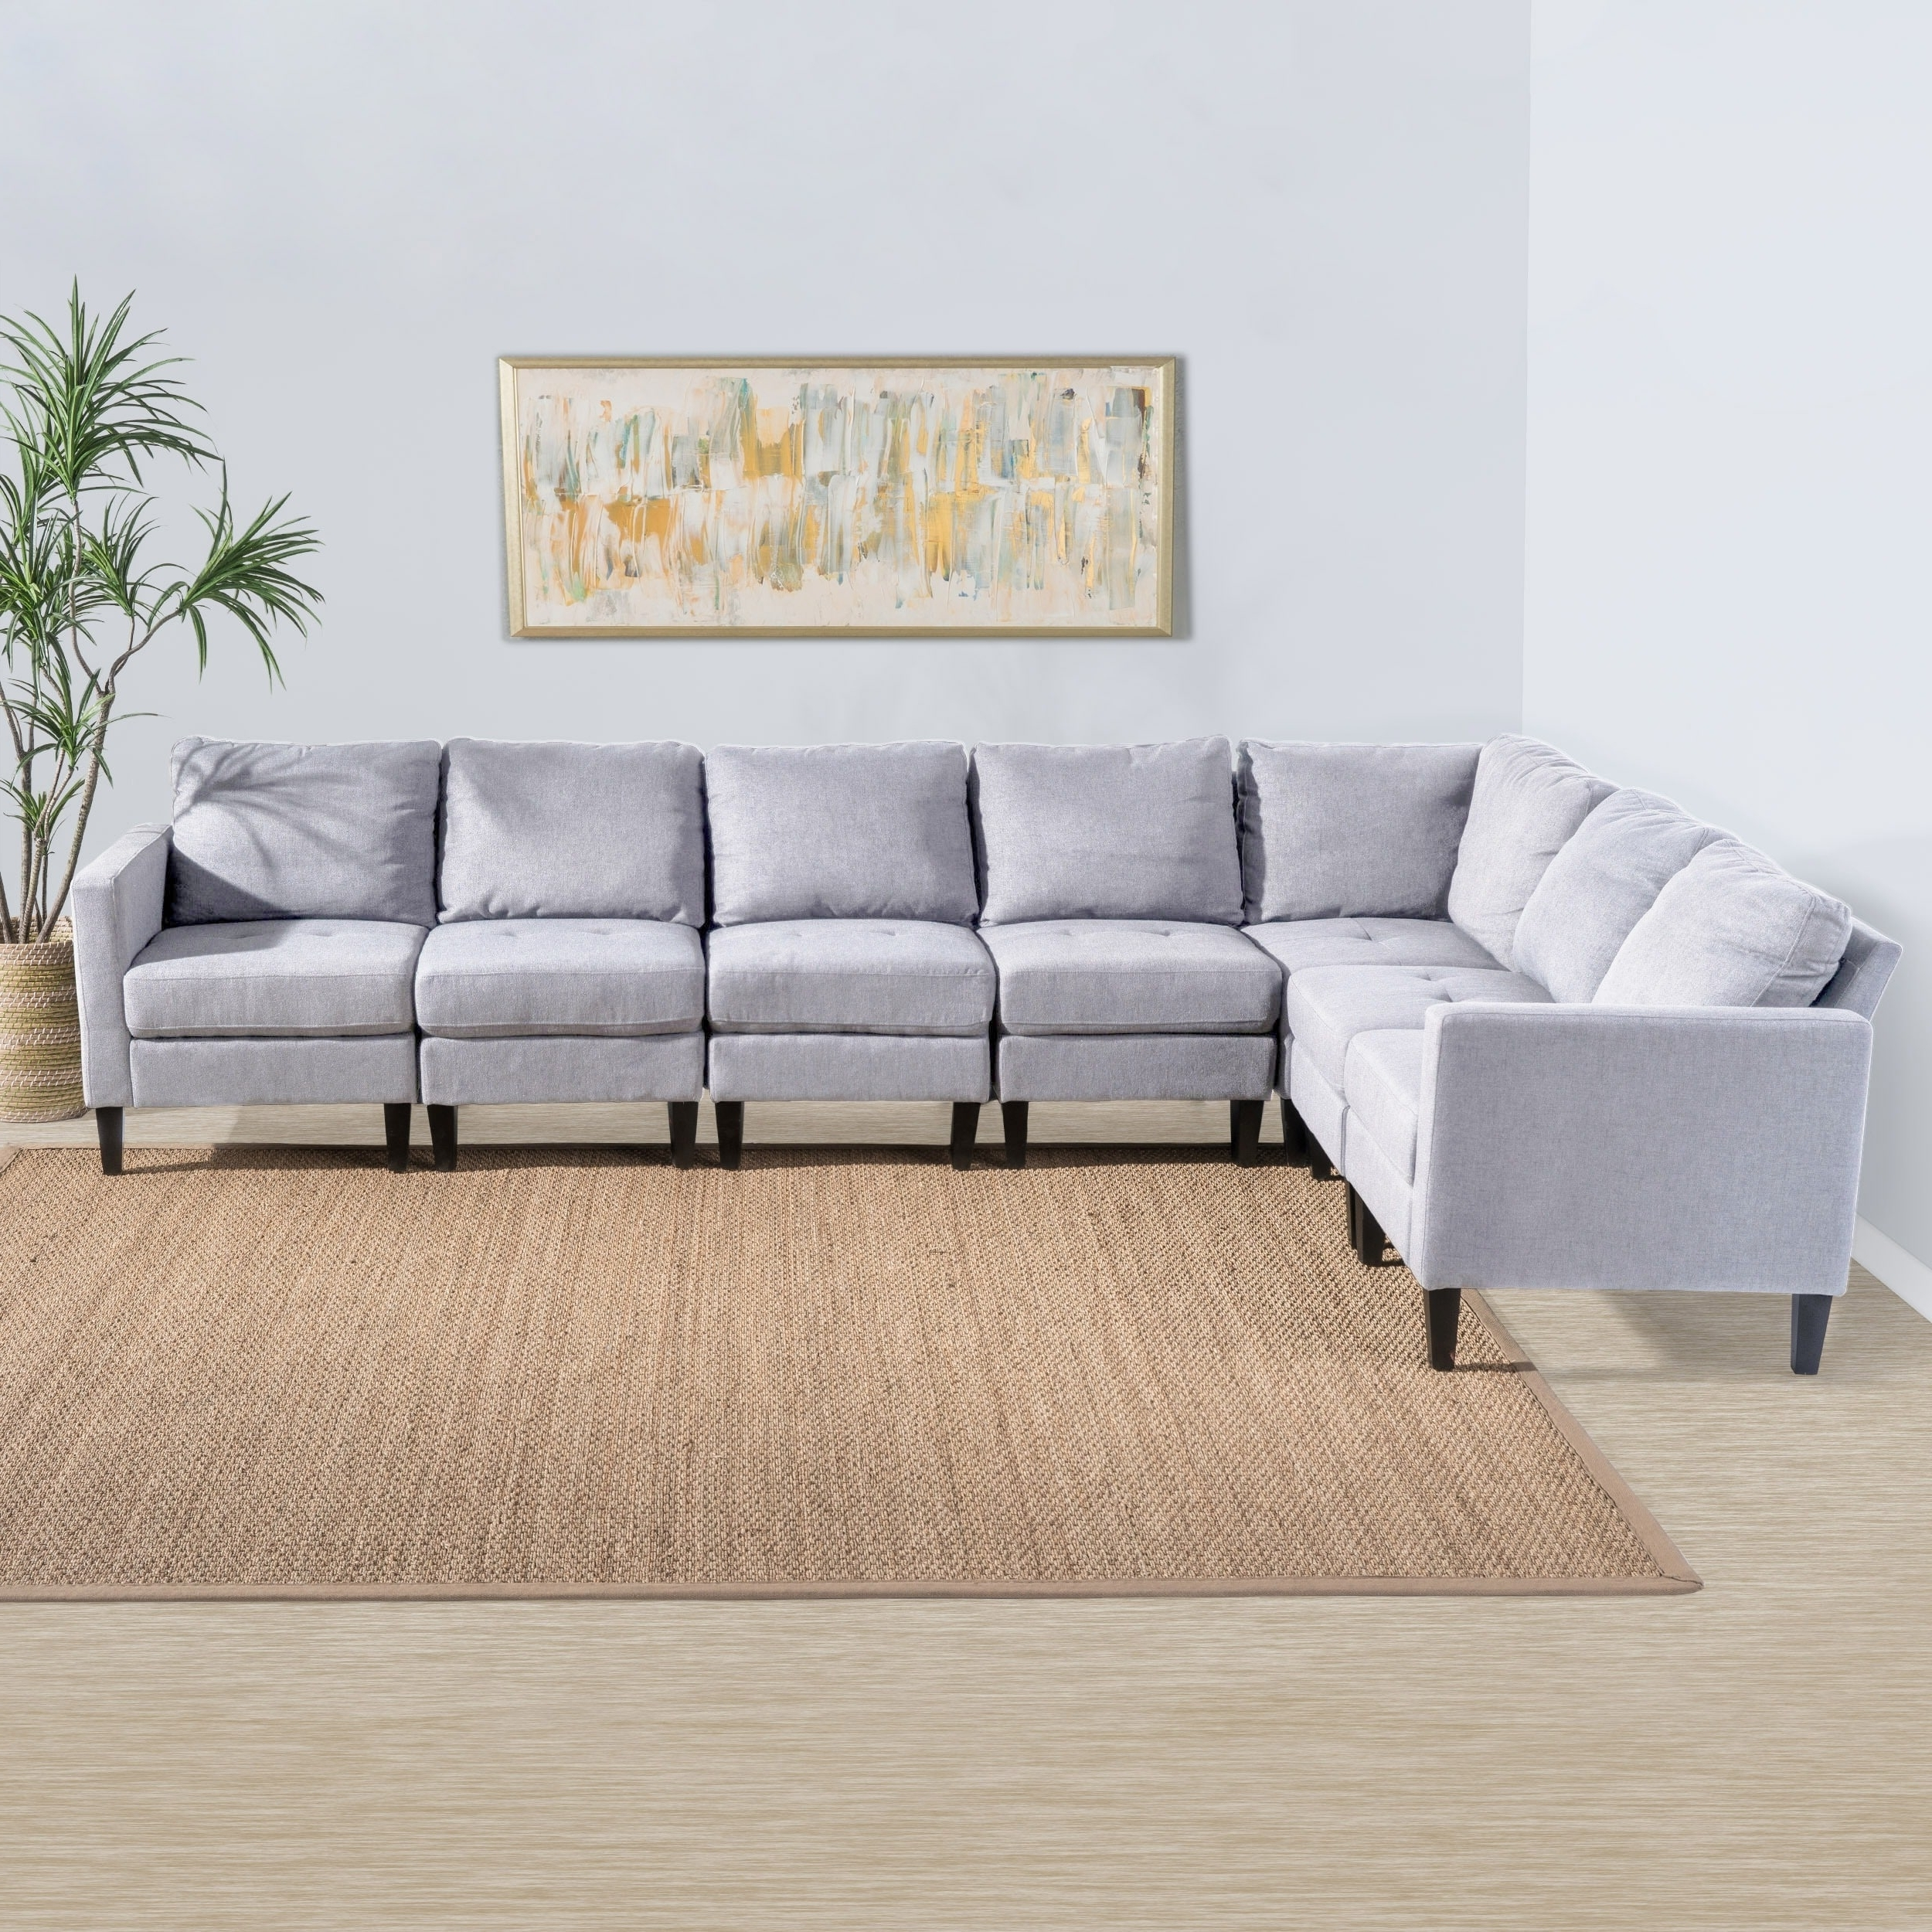 Fabric Sectional Sofas Throughout Famous Zahra 7 Piece Fabric Sectional Sofa Setchristopher Knight Home (View 10 of 20)